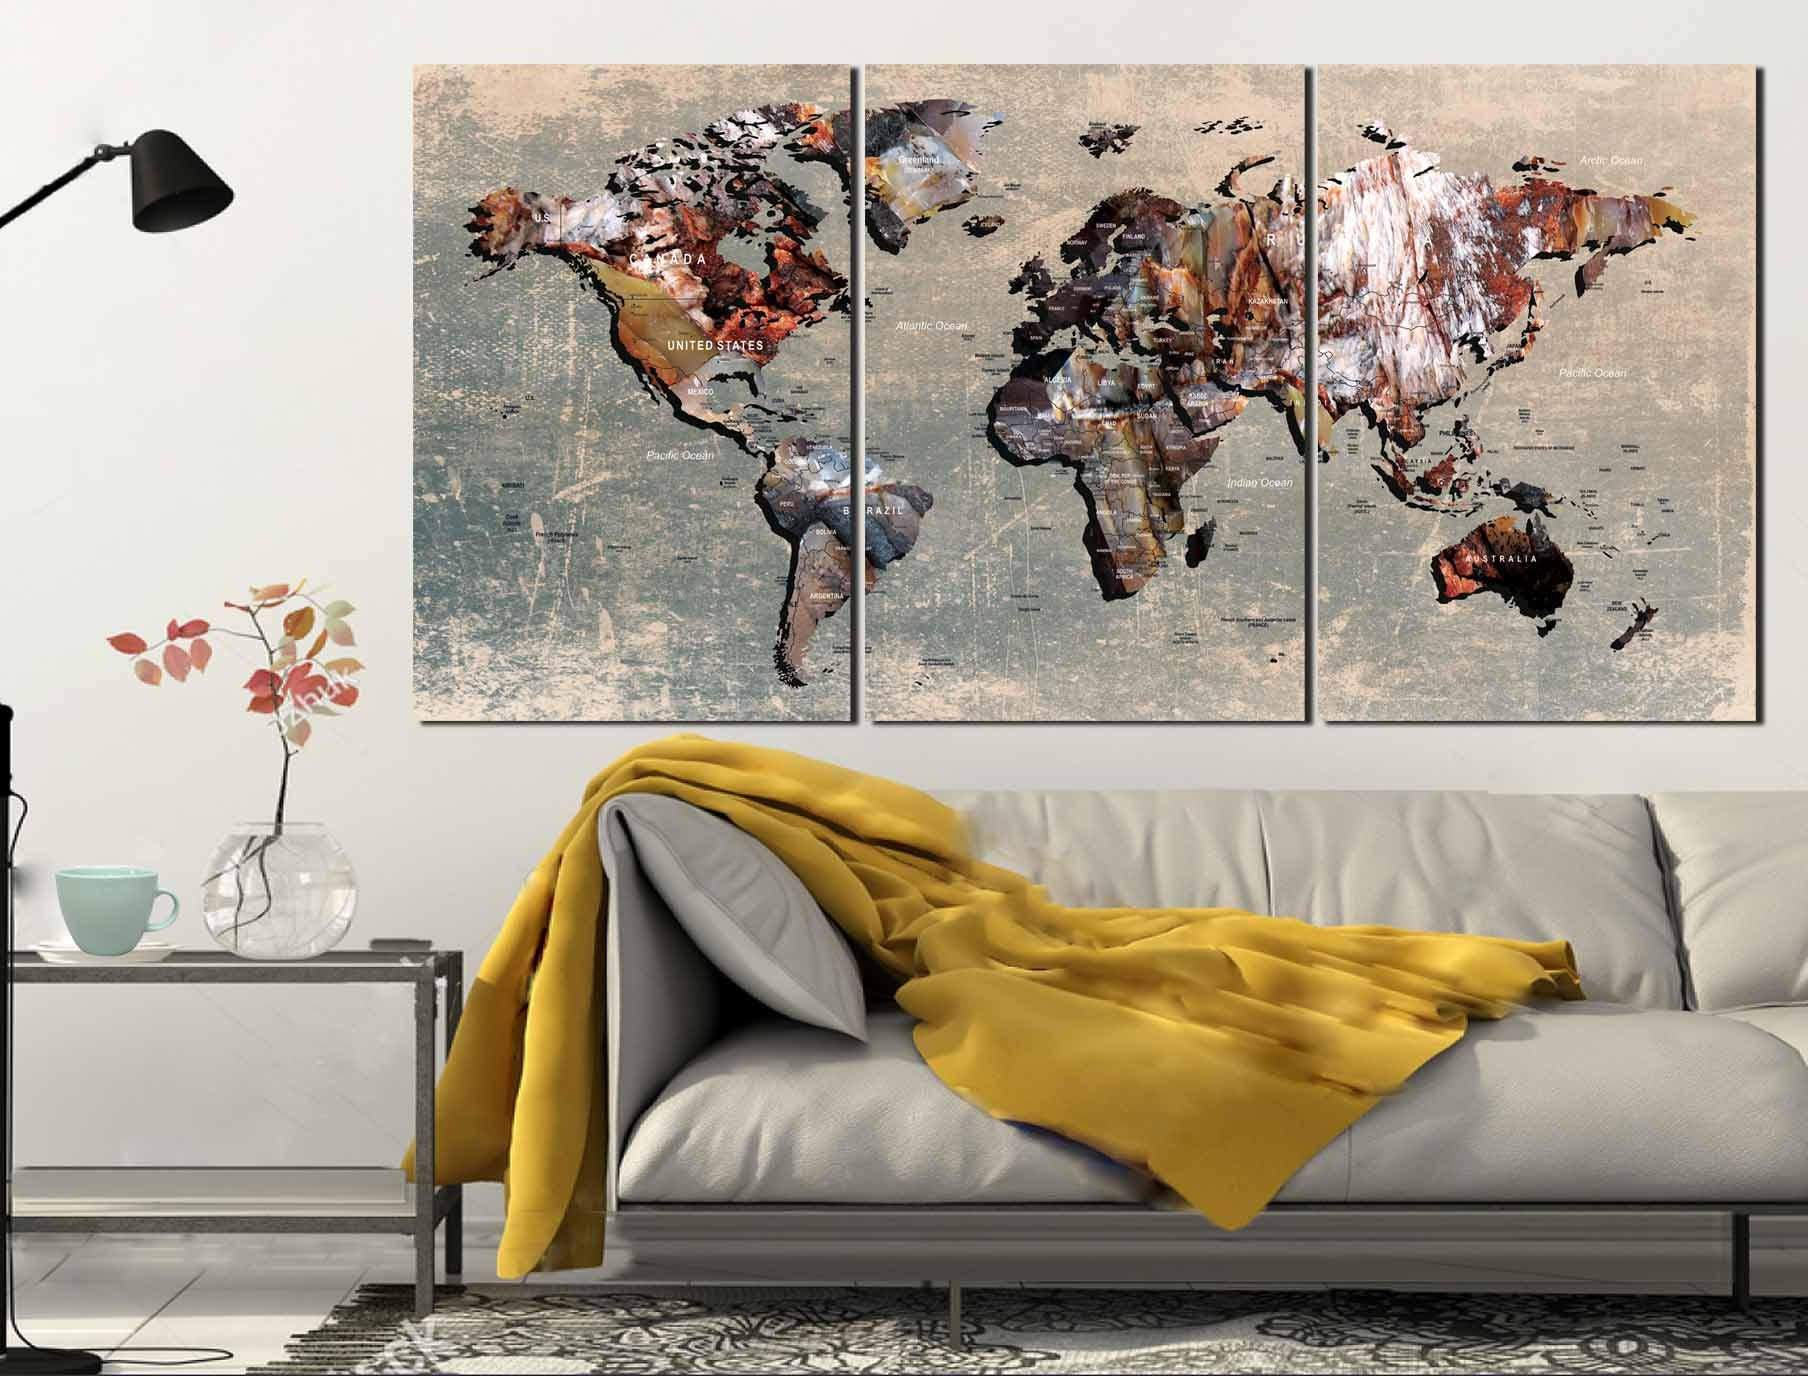 World mapworld map wall artworld map canvaspush pin world map world mapworld map wall artworld map canvaspush pin world mappush pin maptravel map canvaslarge push pin mapworld map texturemap art gumiabroncs Image collections